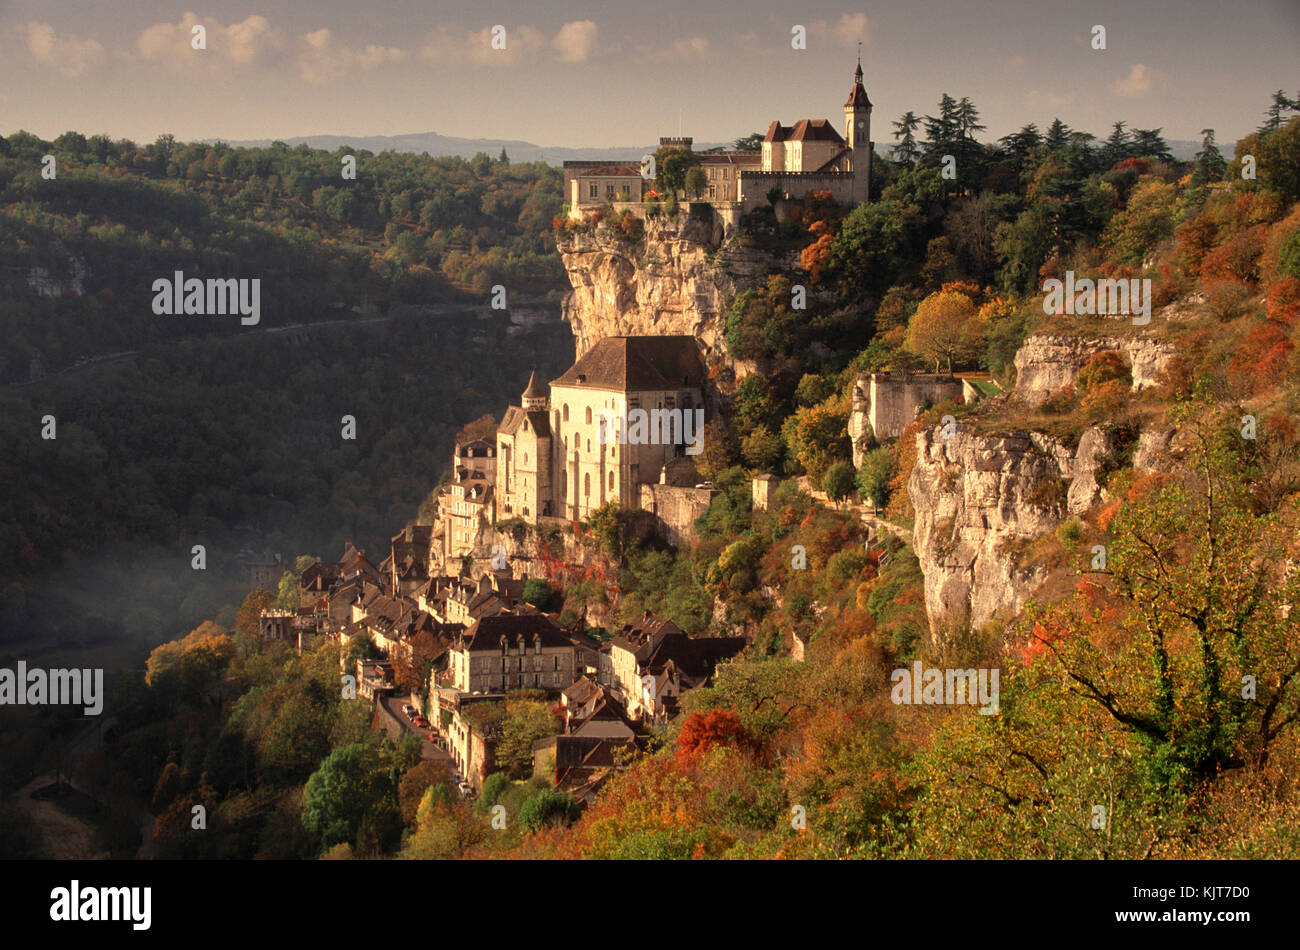 Picturesque village of Rocamadour in early autumn, Haut Quercy, Lot, Midi-Pyrenees, France - Stock Image